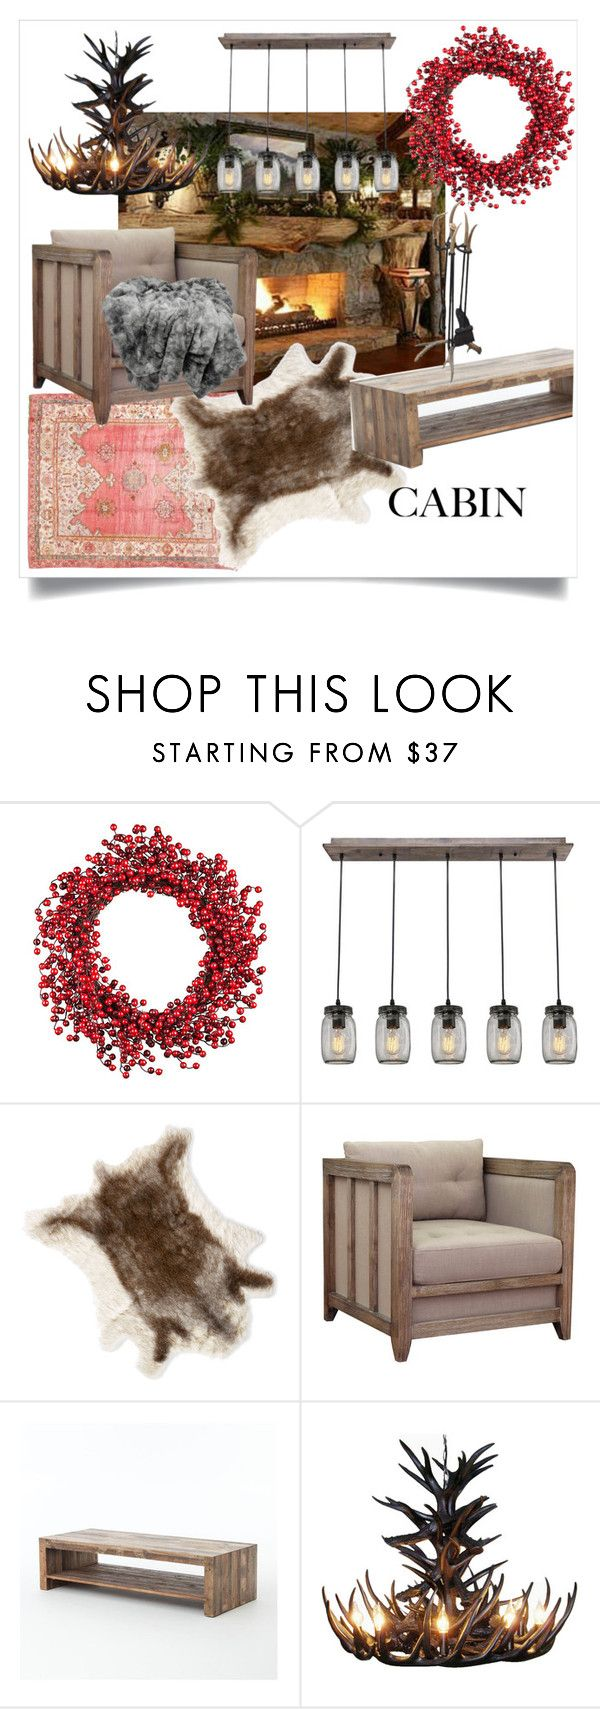 """""""reds and browns"""" by alexei-puha ❤ liked on Polyvore featuring interior, interiors, interior design, home, home decor, interior decorating, Improvements, I Love Living, cabinstyle and wintercabin"""